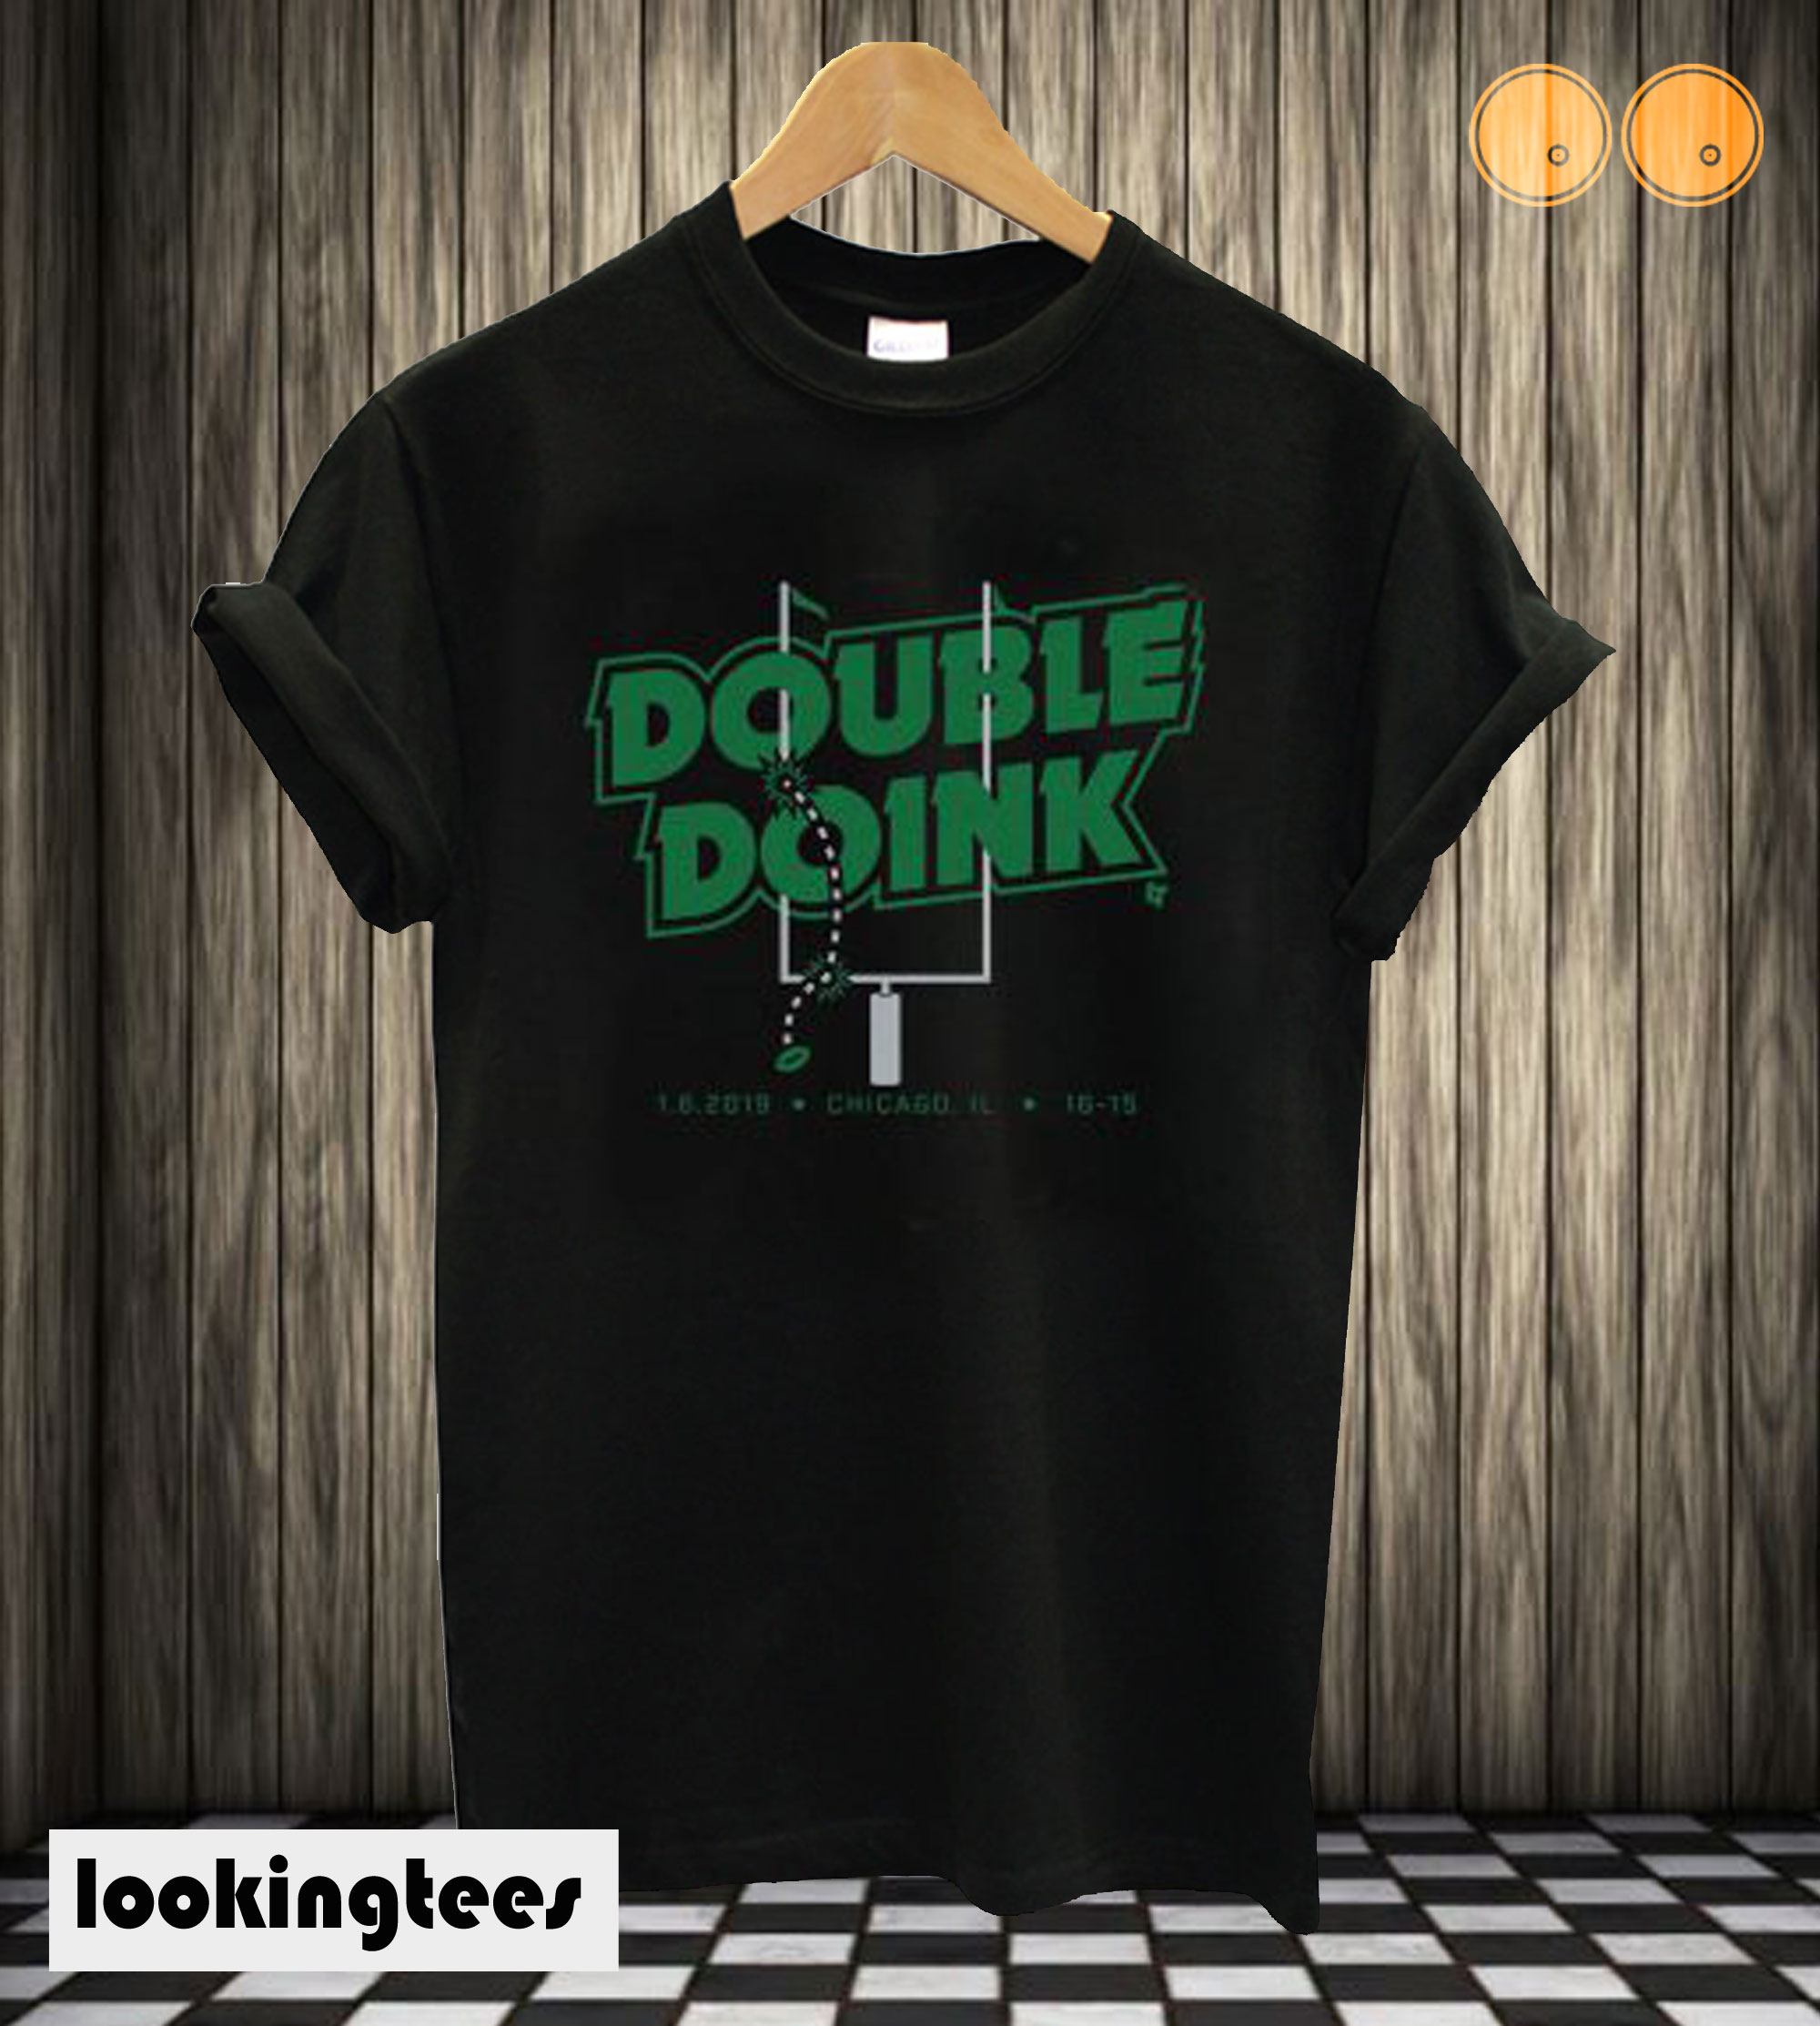 The Double Doink T shirt